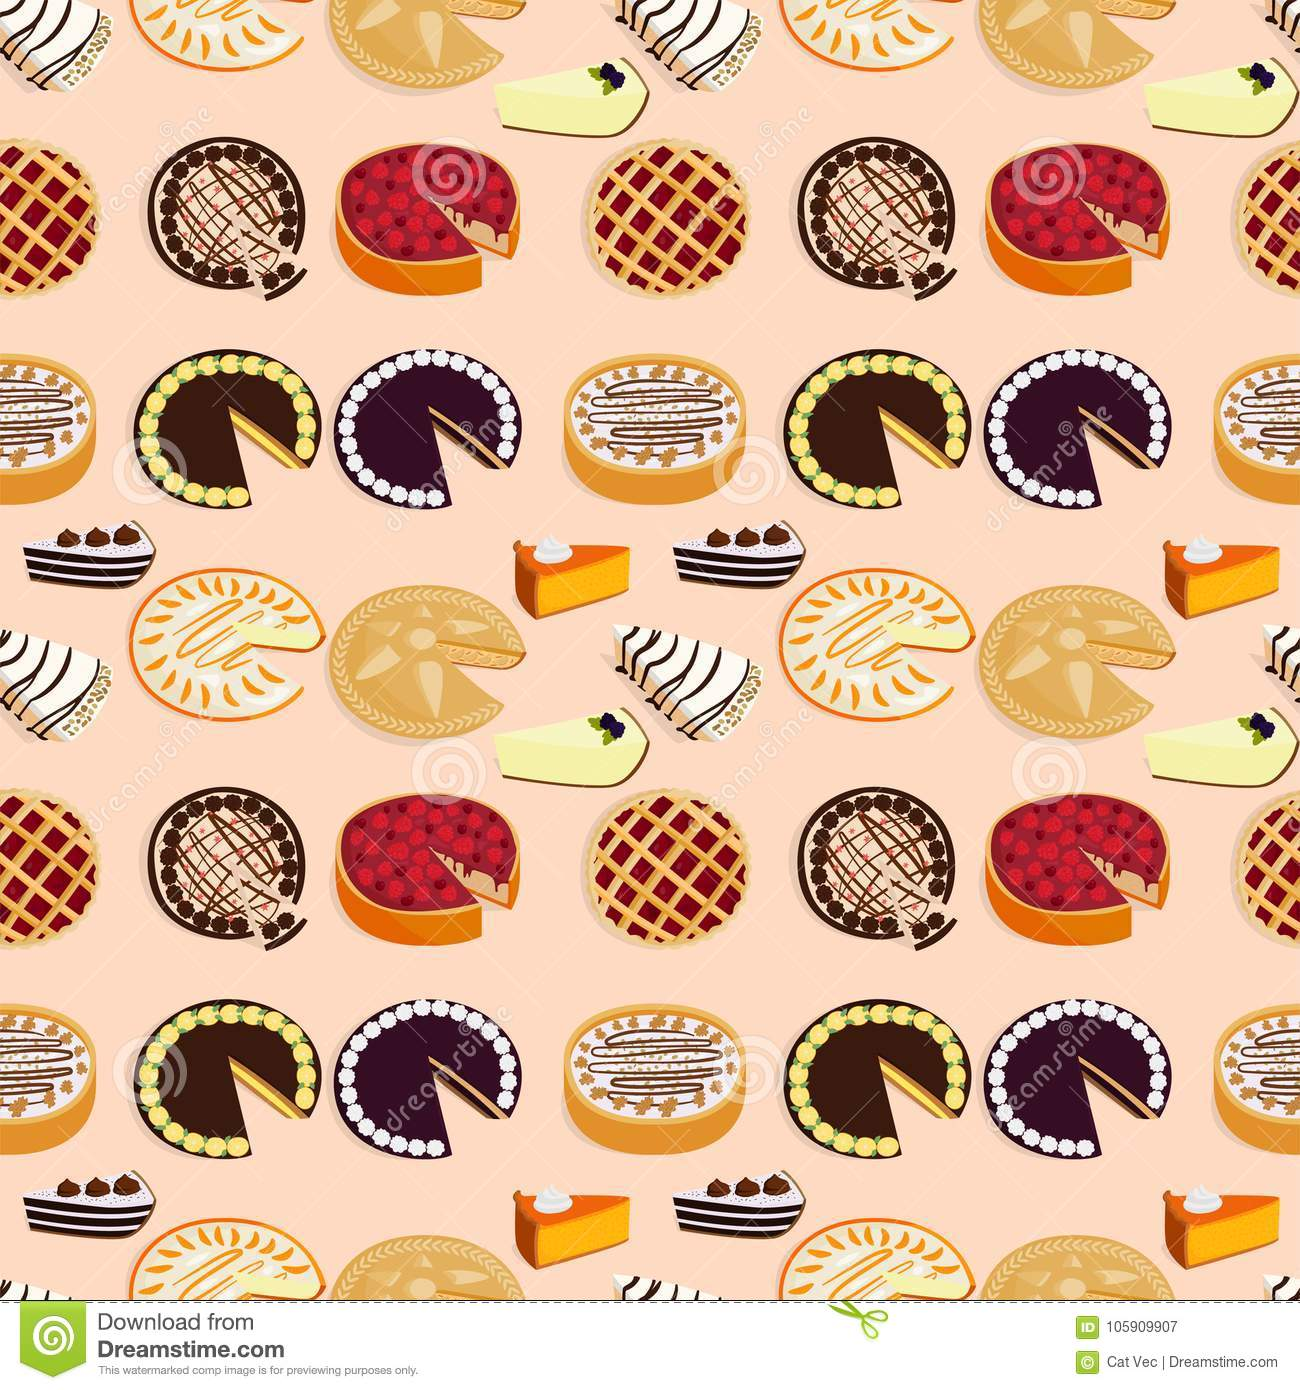 Homemade organic pie dessert vector illustration fresh golden rustic gourmet bakery seamless pattern background.